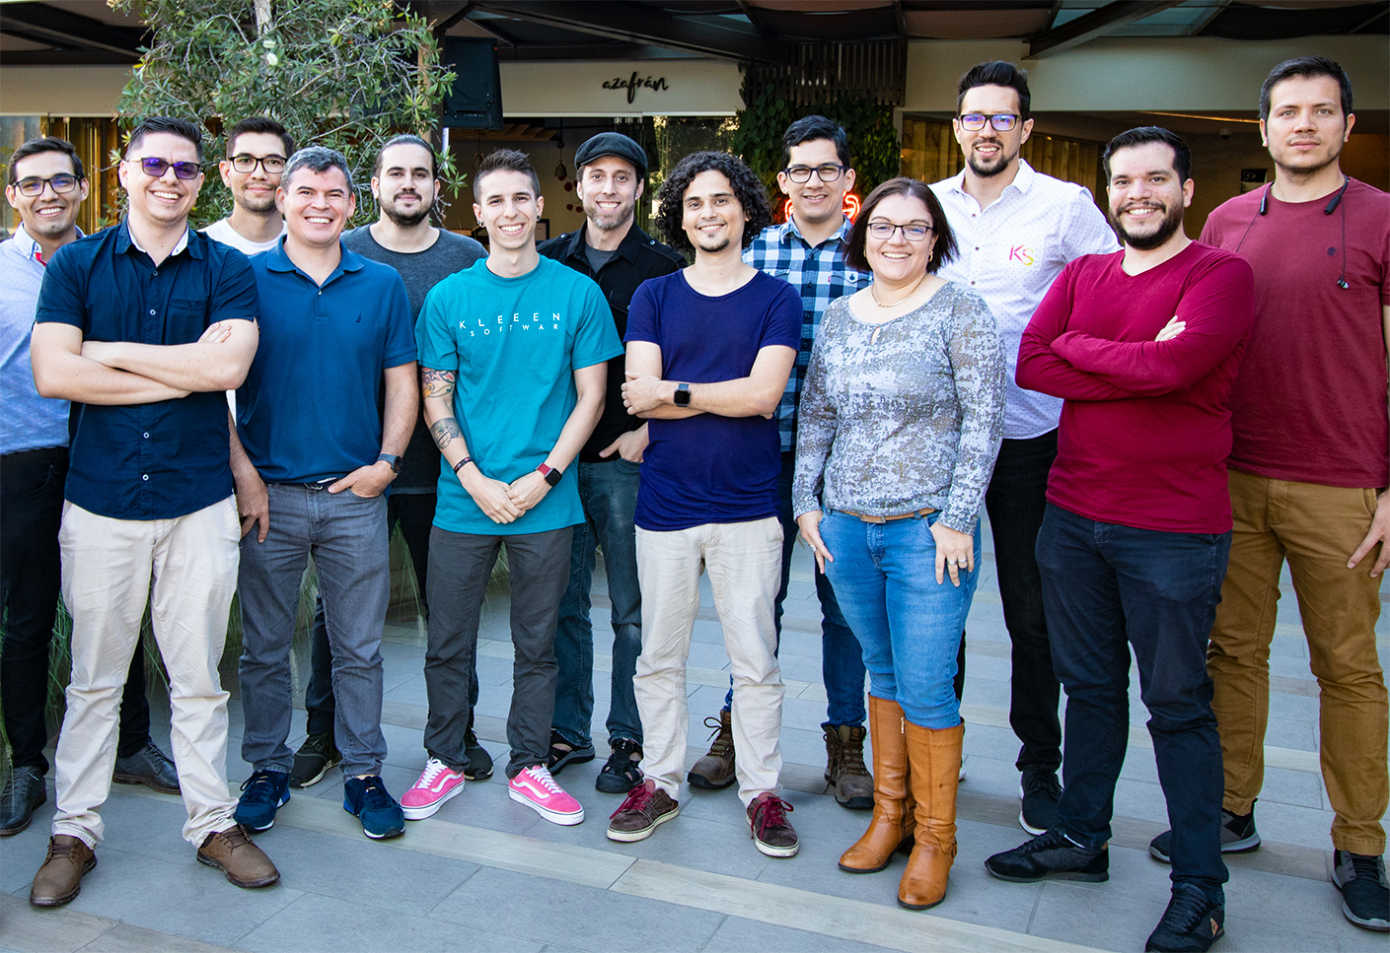 Kleeen raises $3.8M to make front-end design for business applications easy